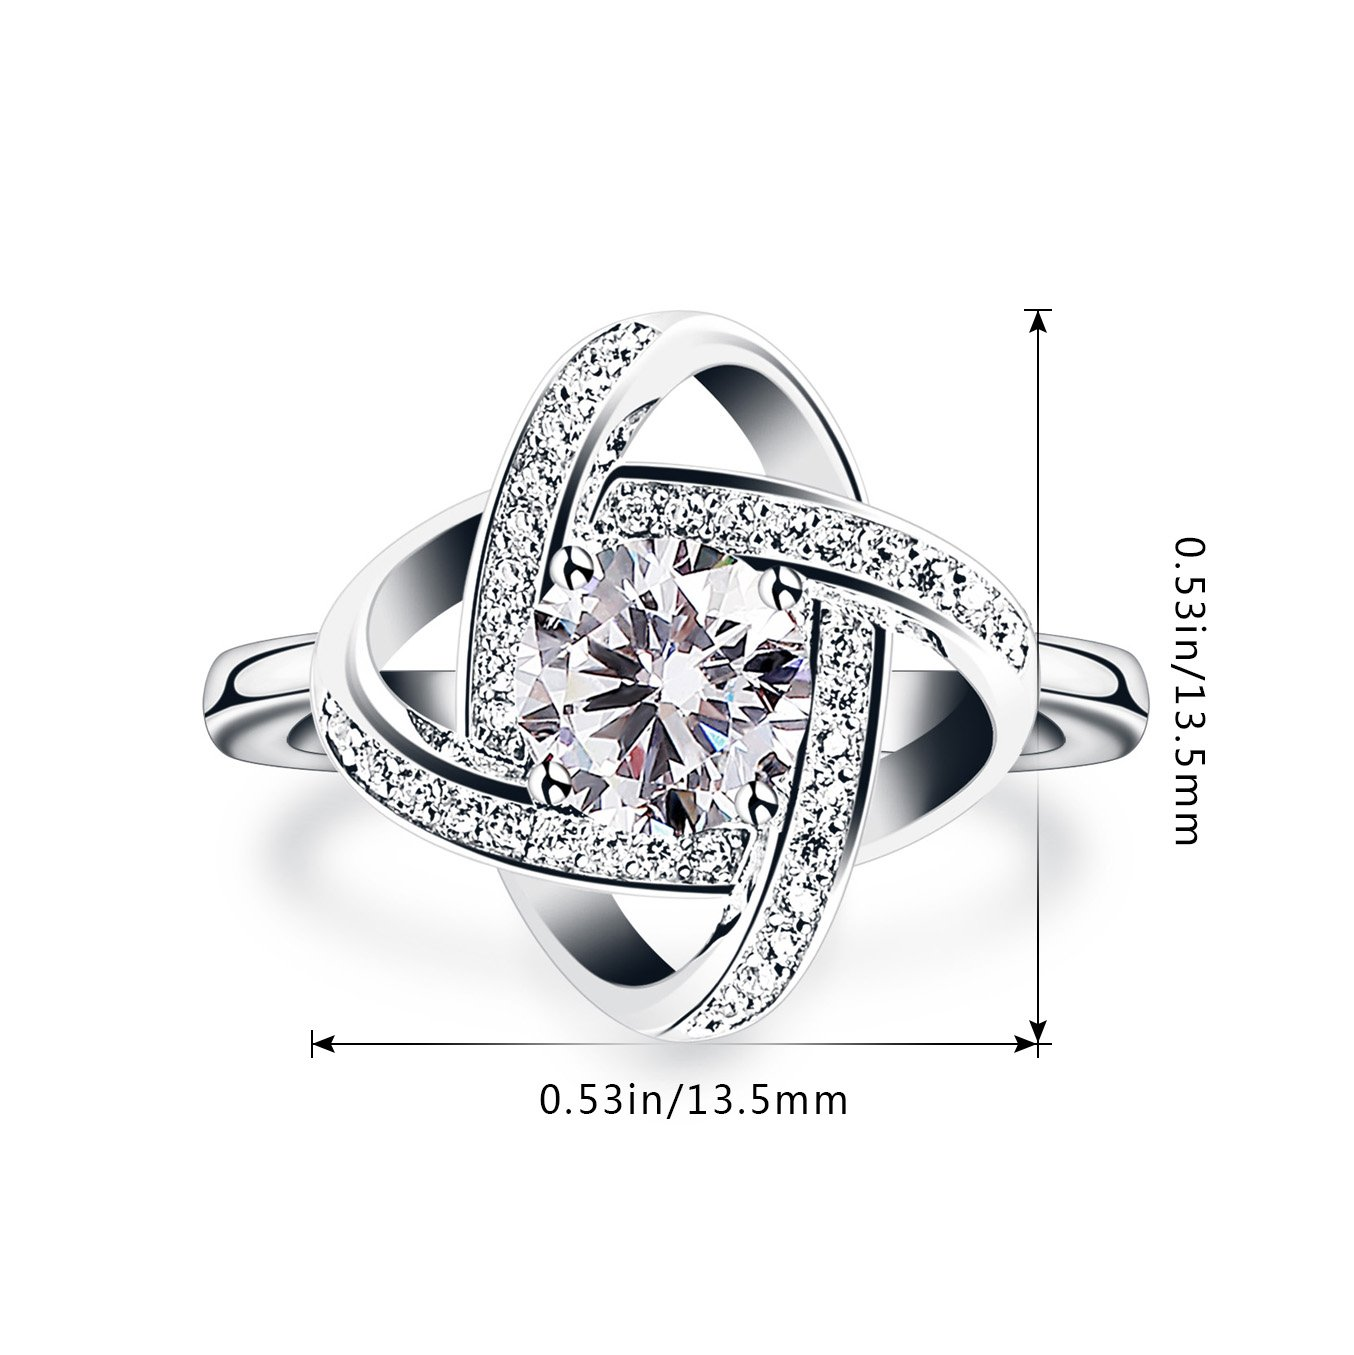 B.Catcher Women's Ring Adjustable 925 Sterling Silver Cubic Zirconia Valentine's Gift for Her by B.Catcher (Image #7)